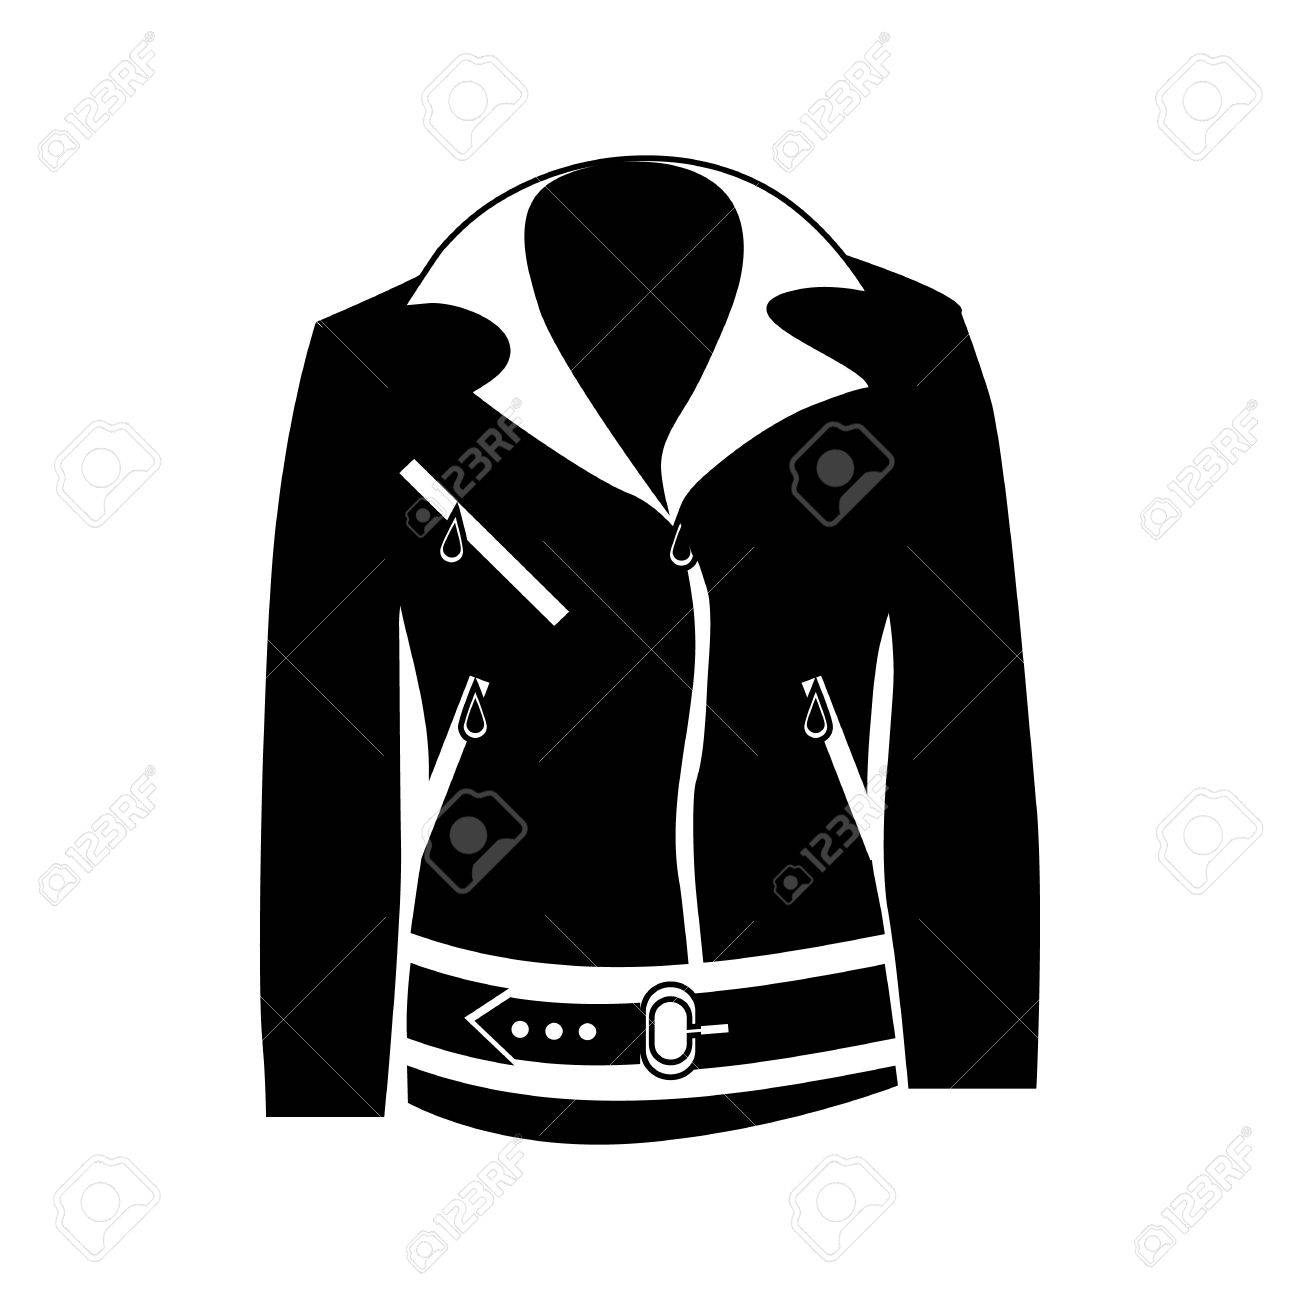 a5a80a937b31 Womens jacket icon in simple style isolated on white background. Clothing  symbol vector illustration Stock